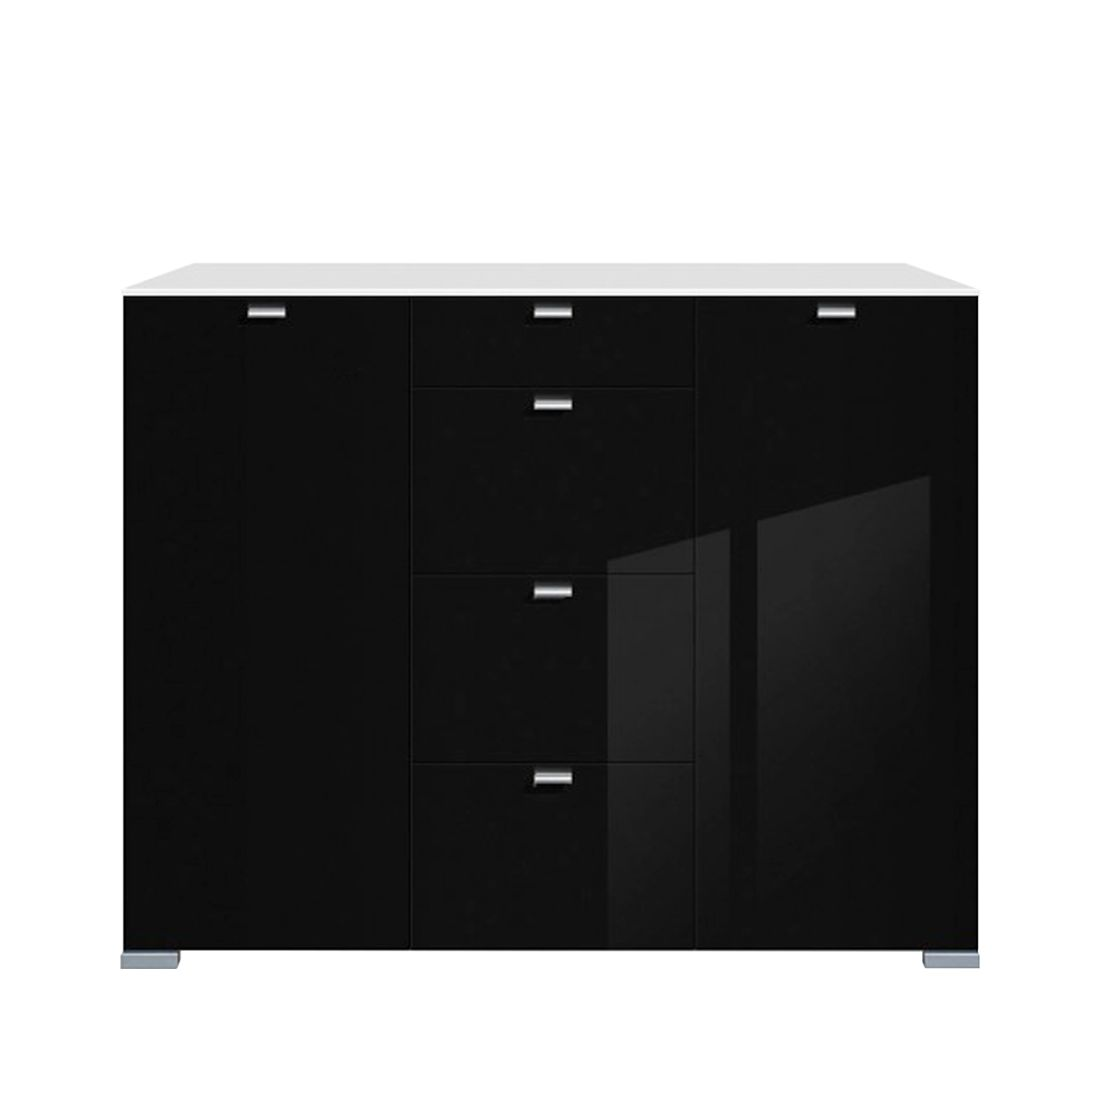 highboards archive seite 16 von 20. Black Bedroom Furniture Sets. Home Design Ideas